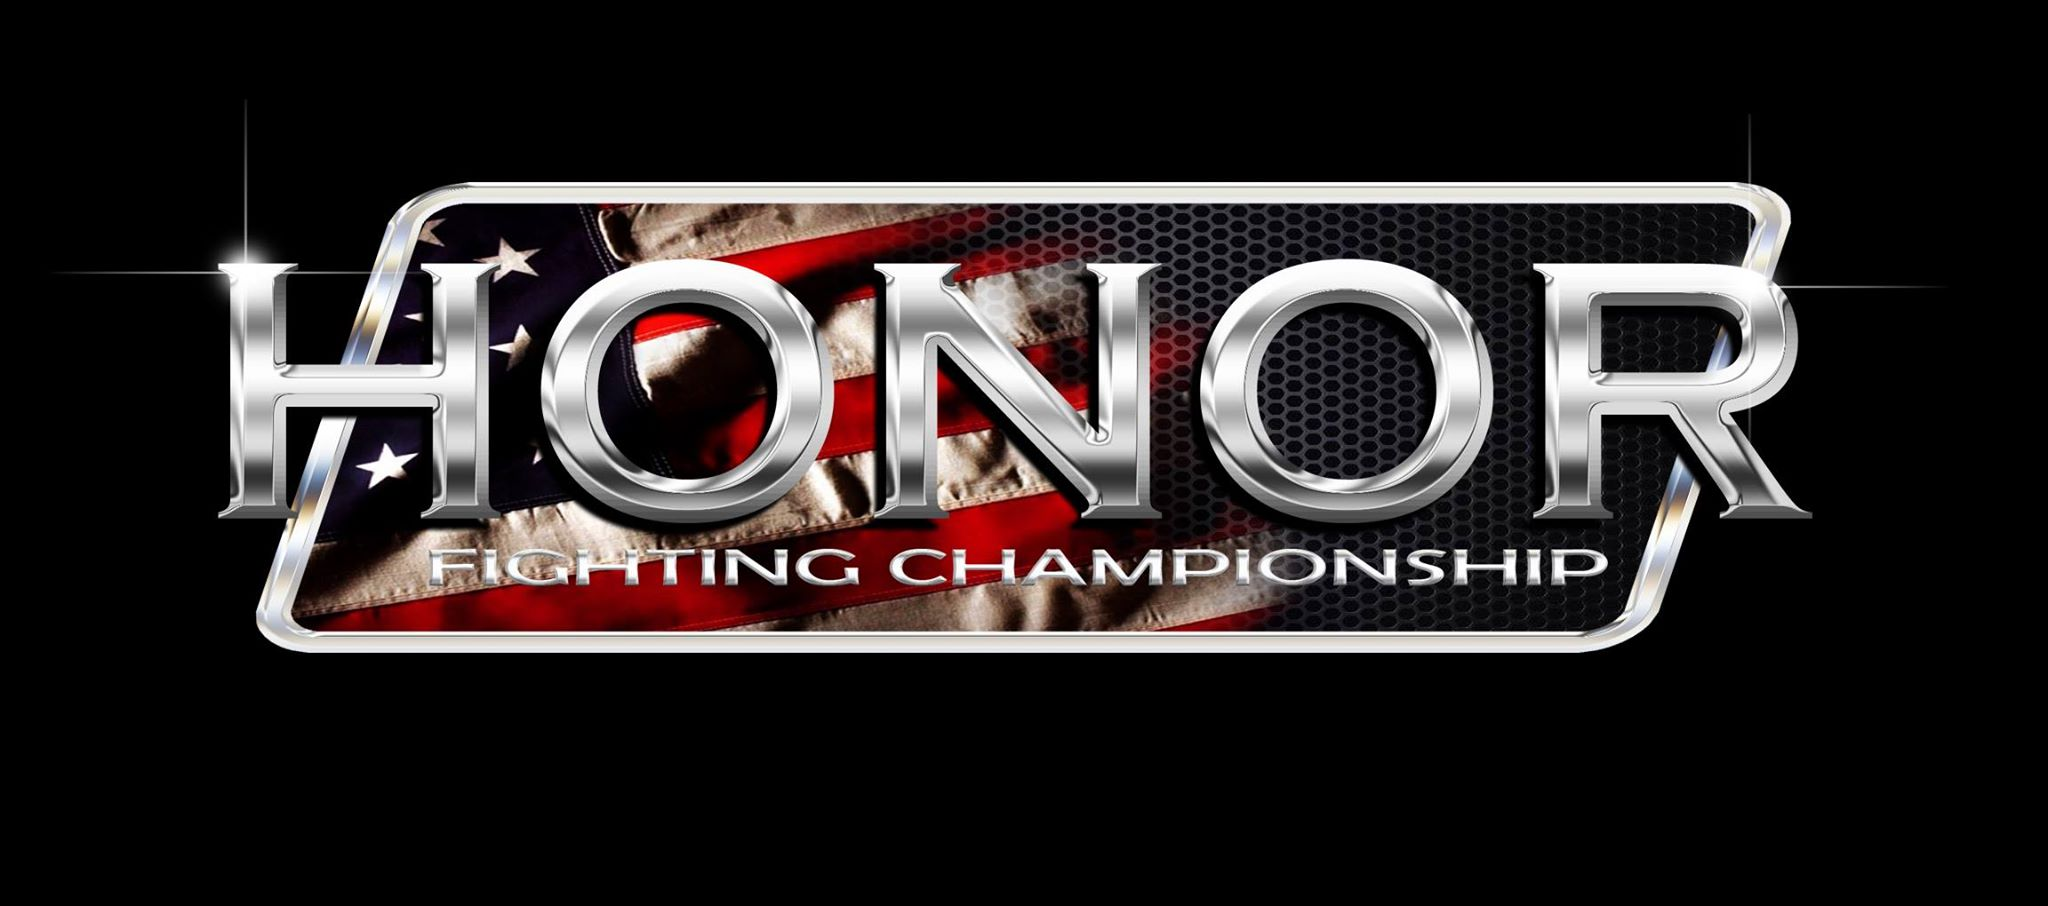 Honor Fighting Championship